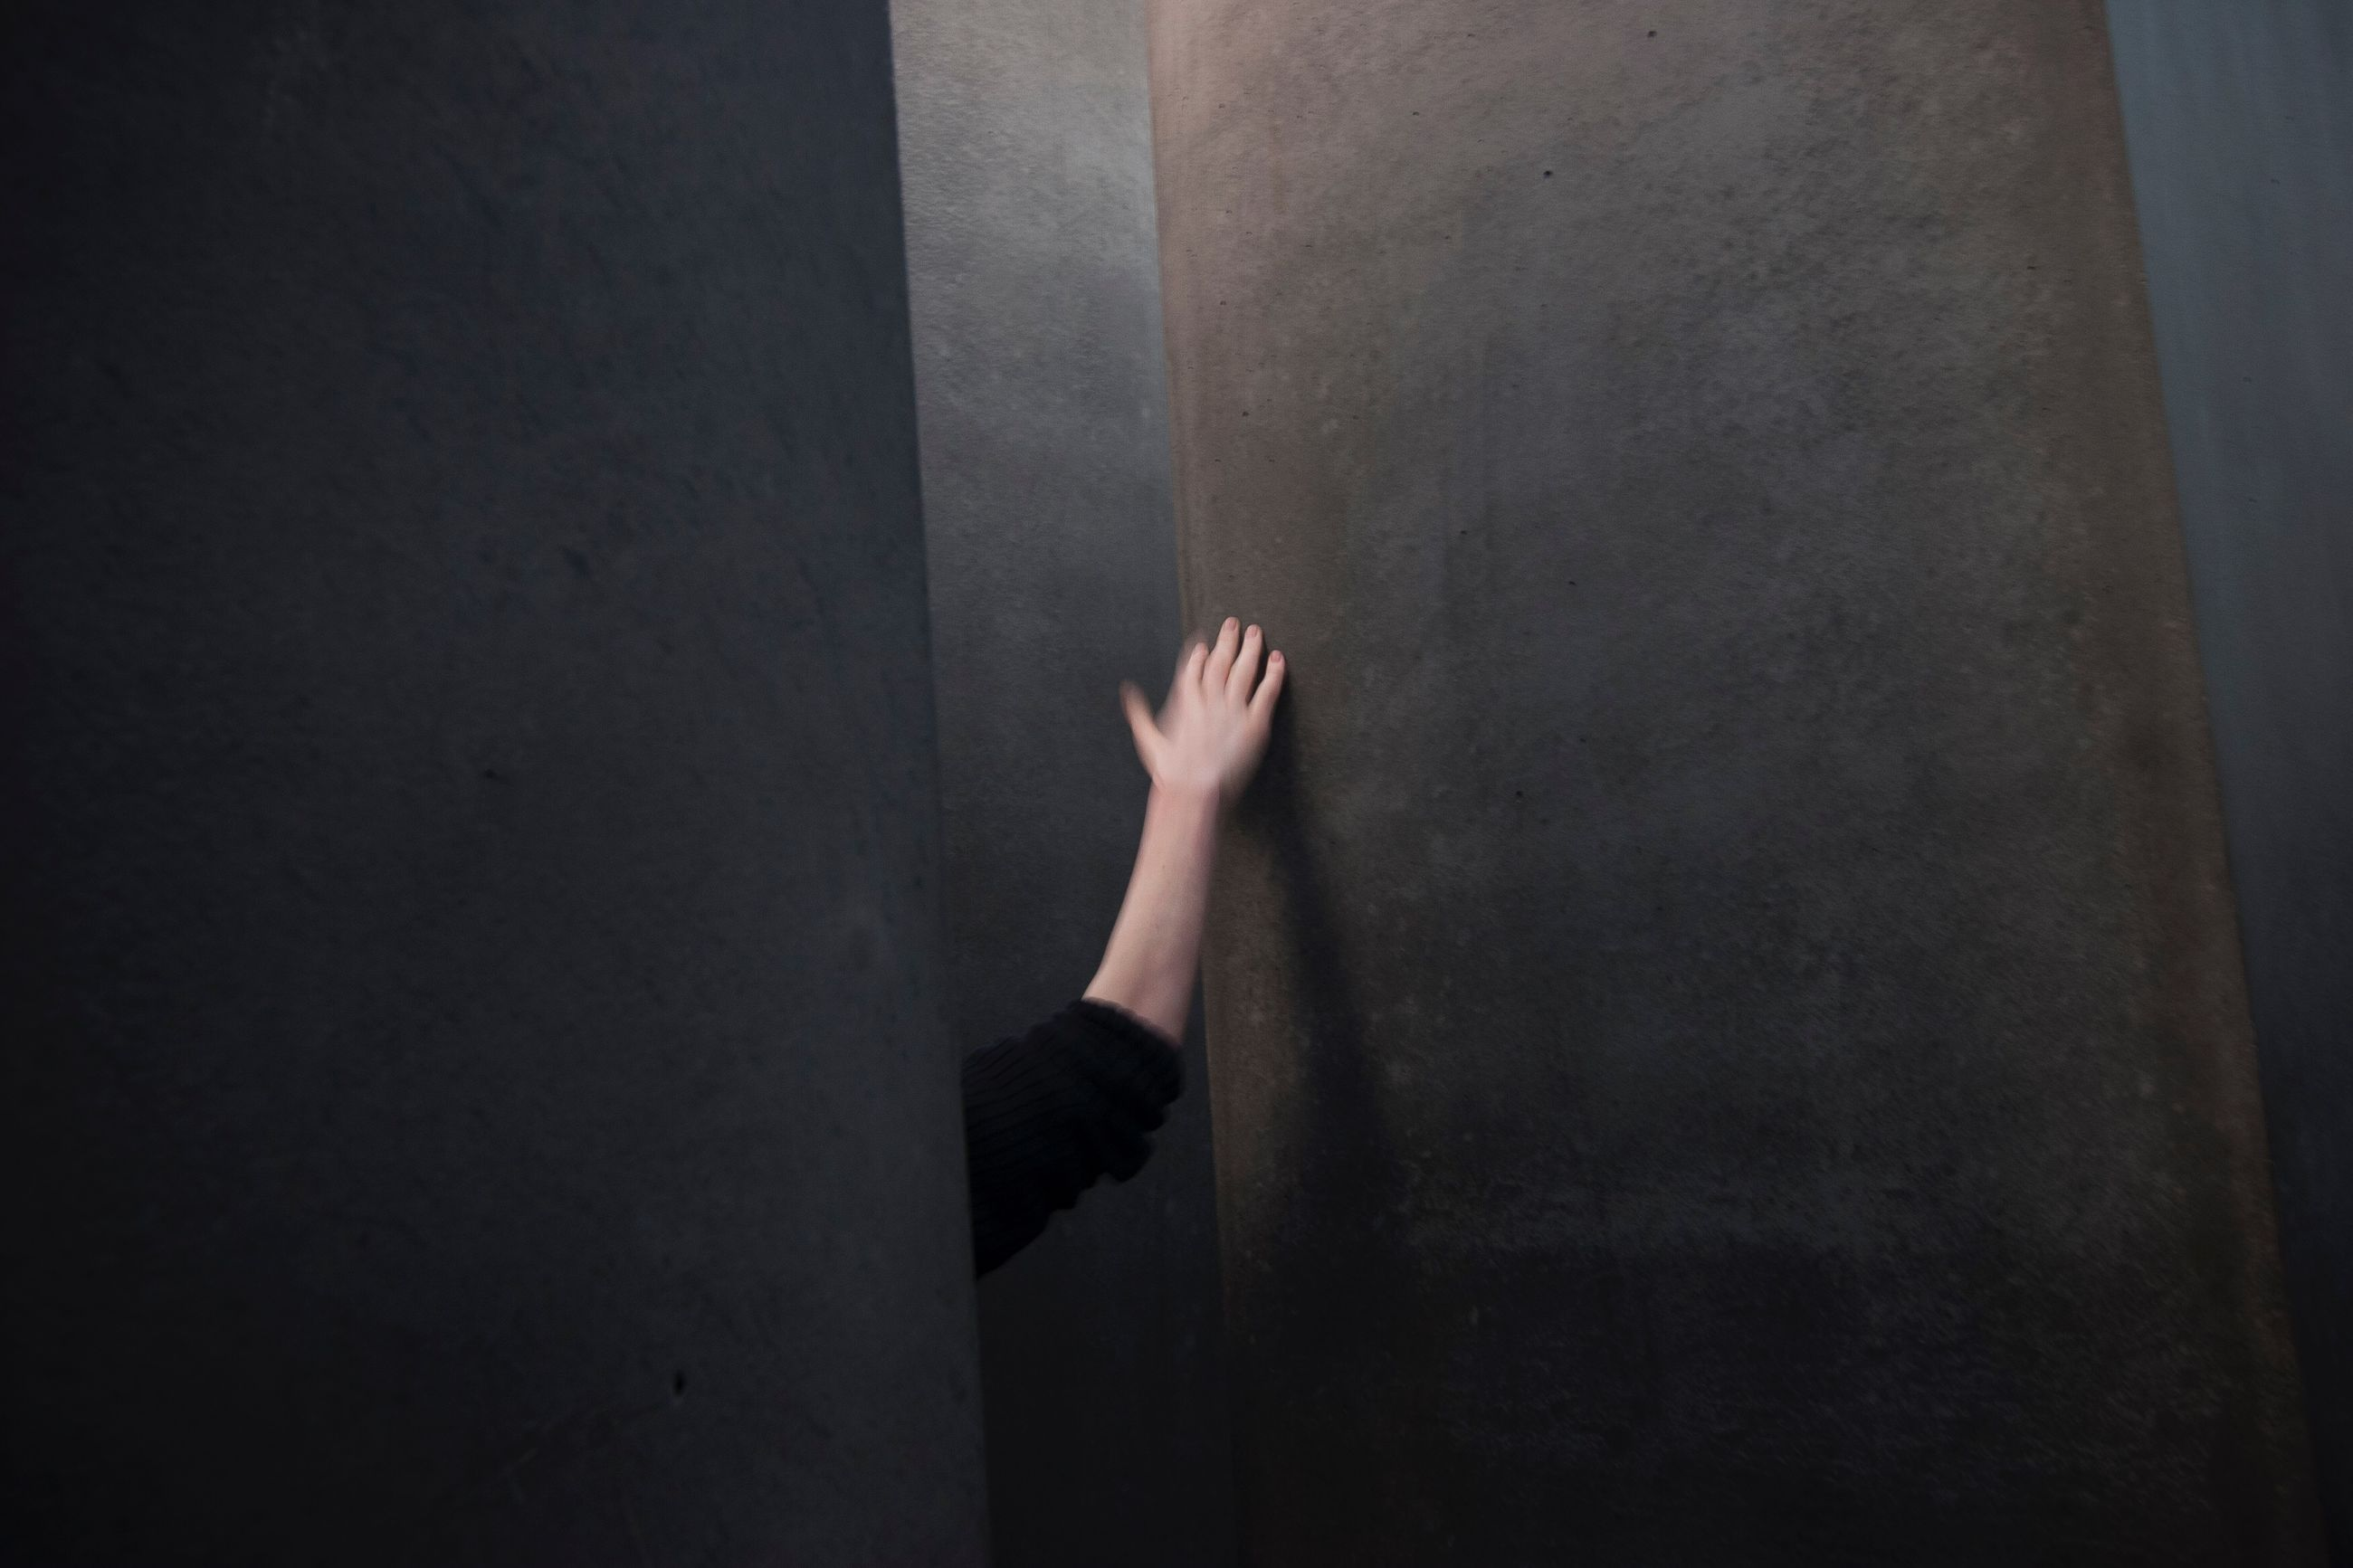 human body part, one person, body part, human hand, hand, indoors, real people, wall - building feature, unrecognizable person, leisure activity, day, lifestyles, architecture, dark, adult, limb, women, barefoot, human limb, contemplation